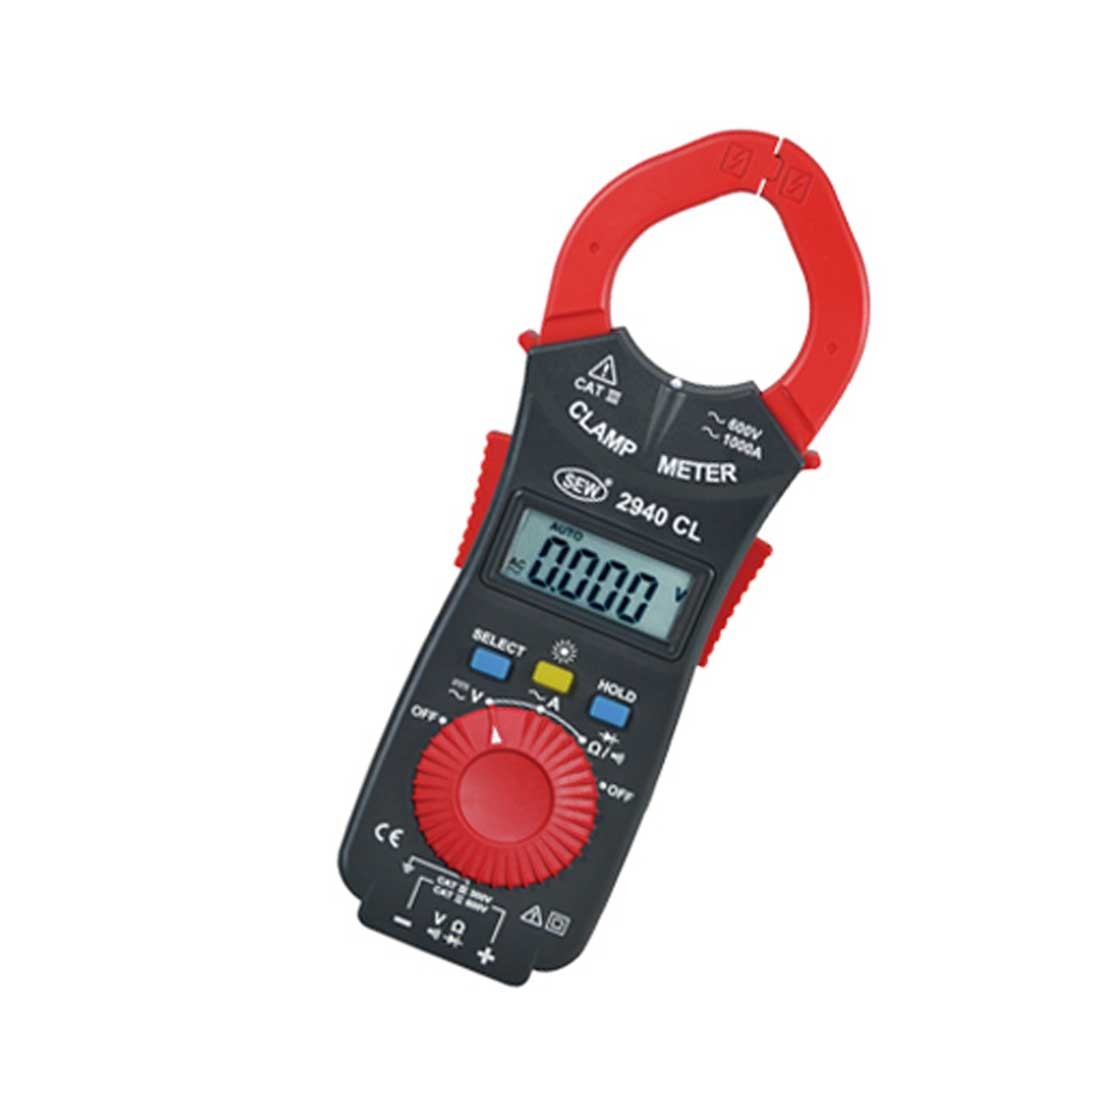 2940CL AC Clamp Meter